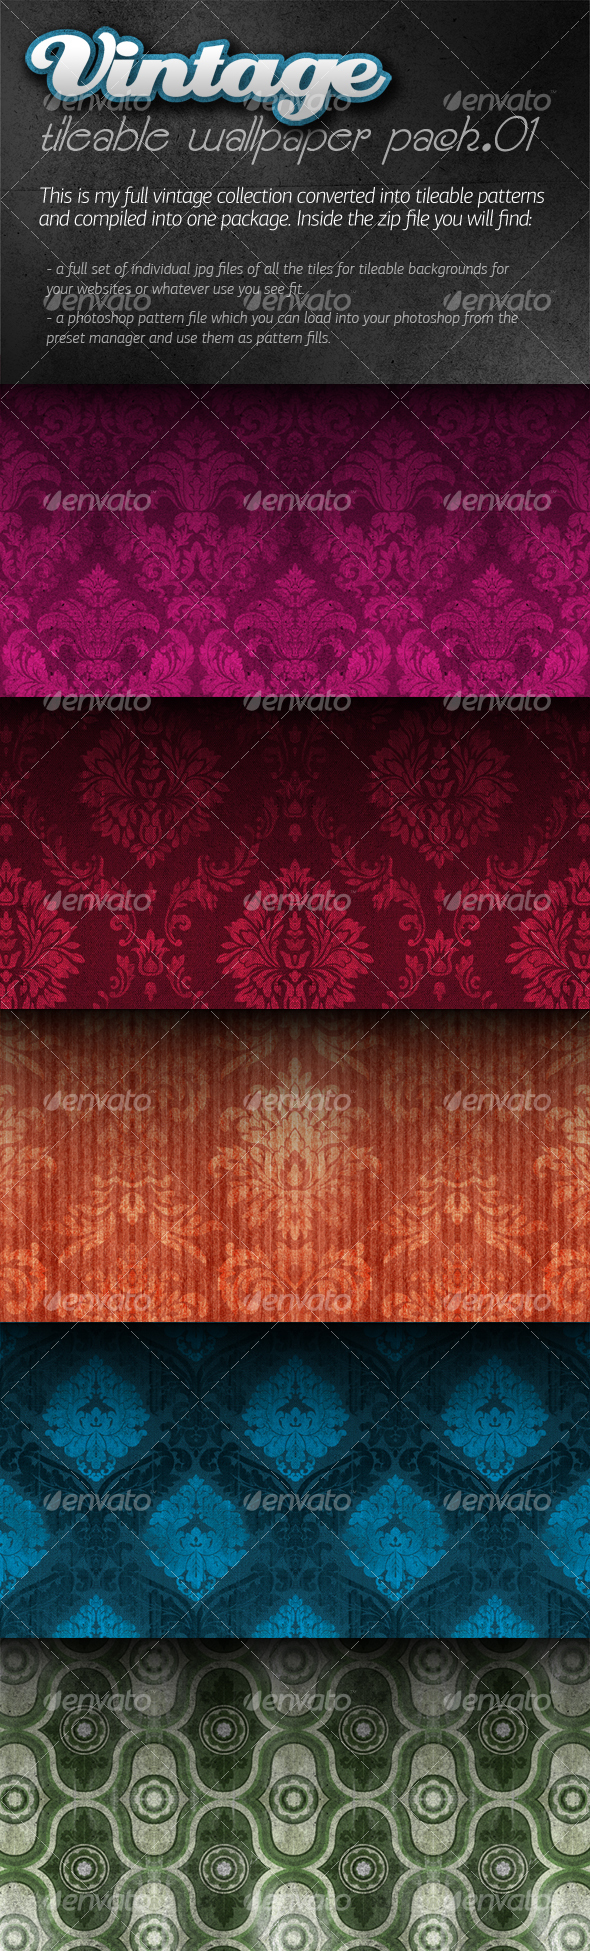 Vintage Tileable Wallpaper Pack 01 - Patterns Backgrounds